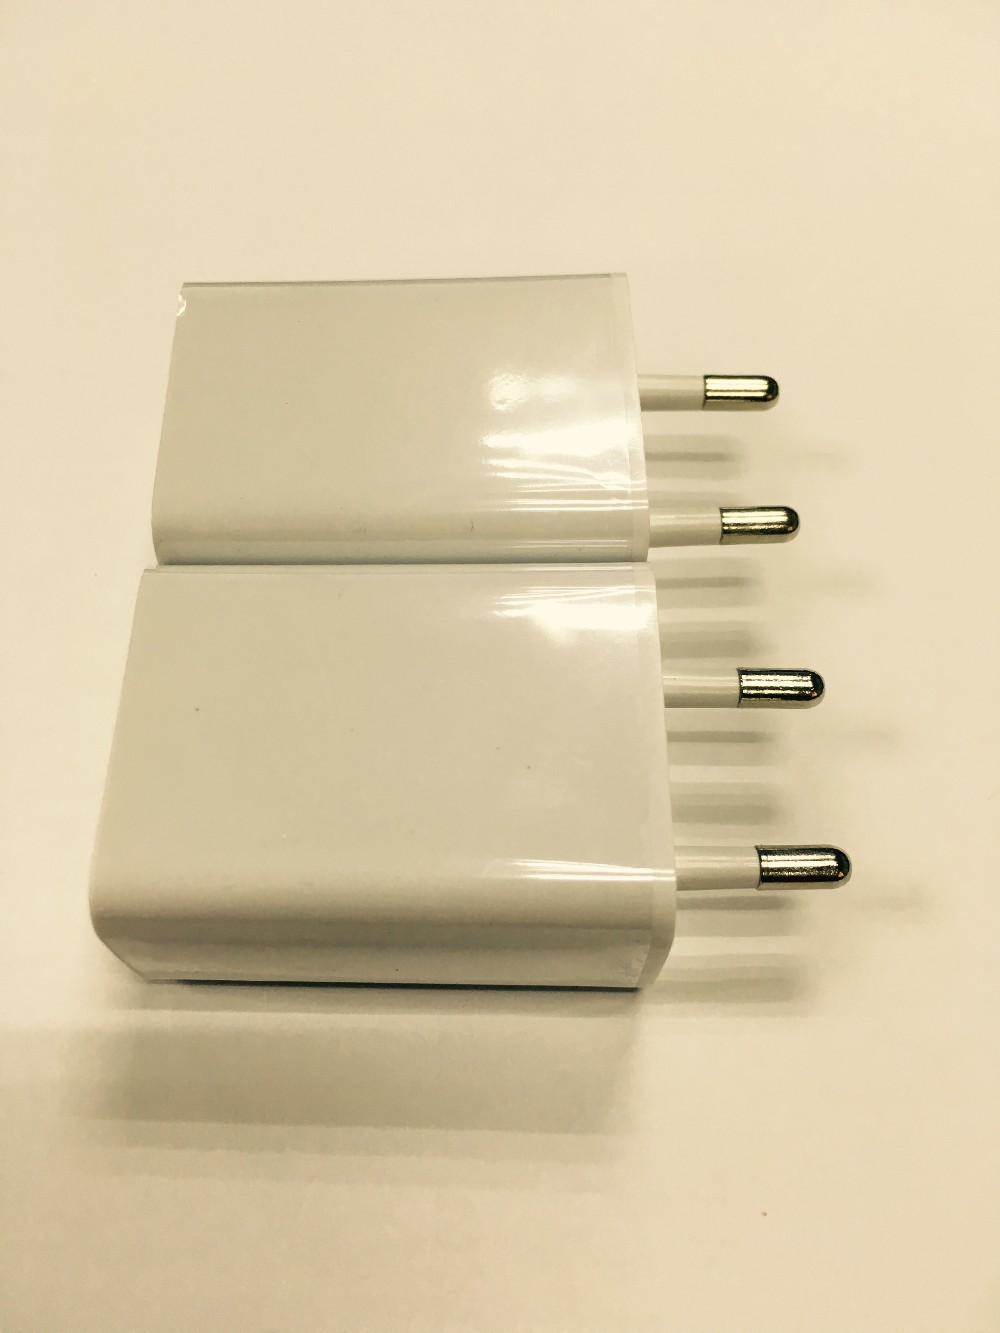 the power adapter for iphone 5V 2A